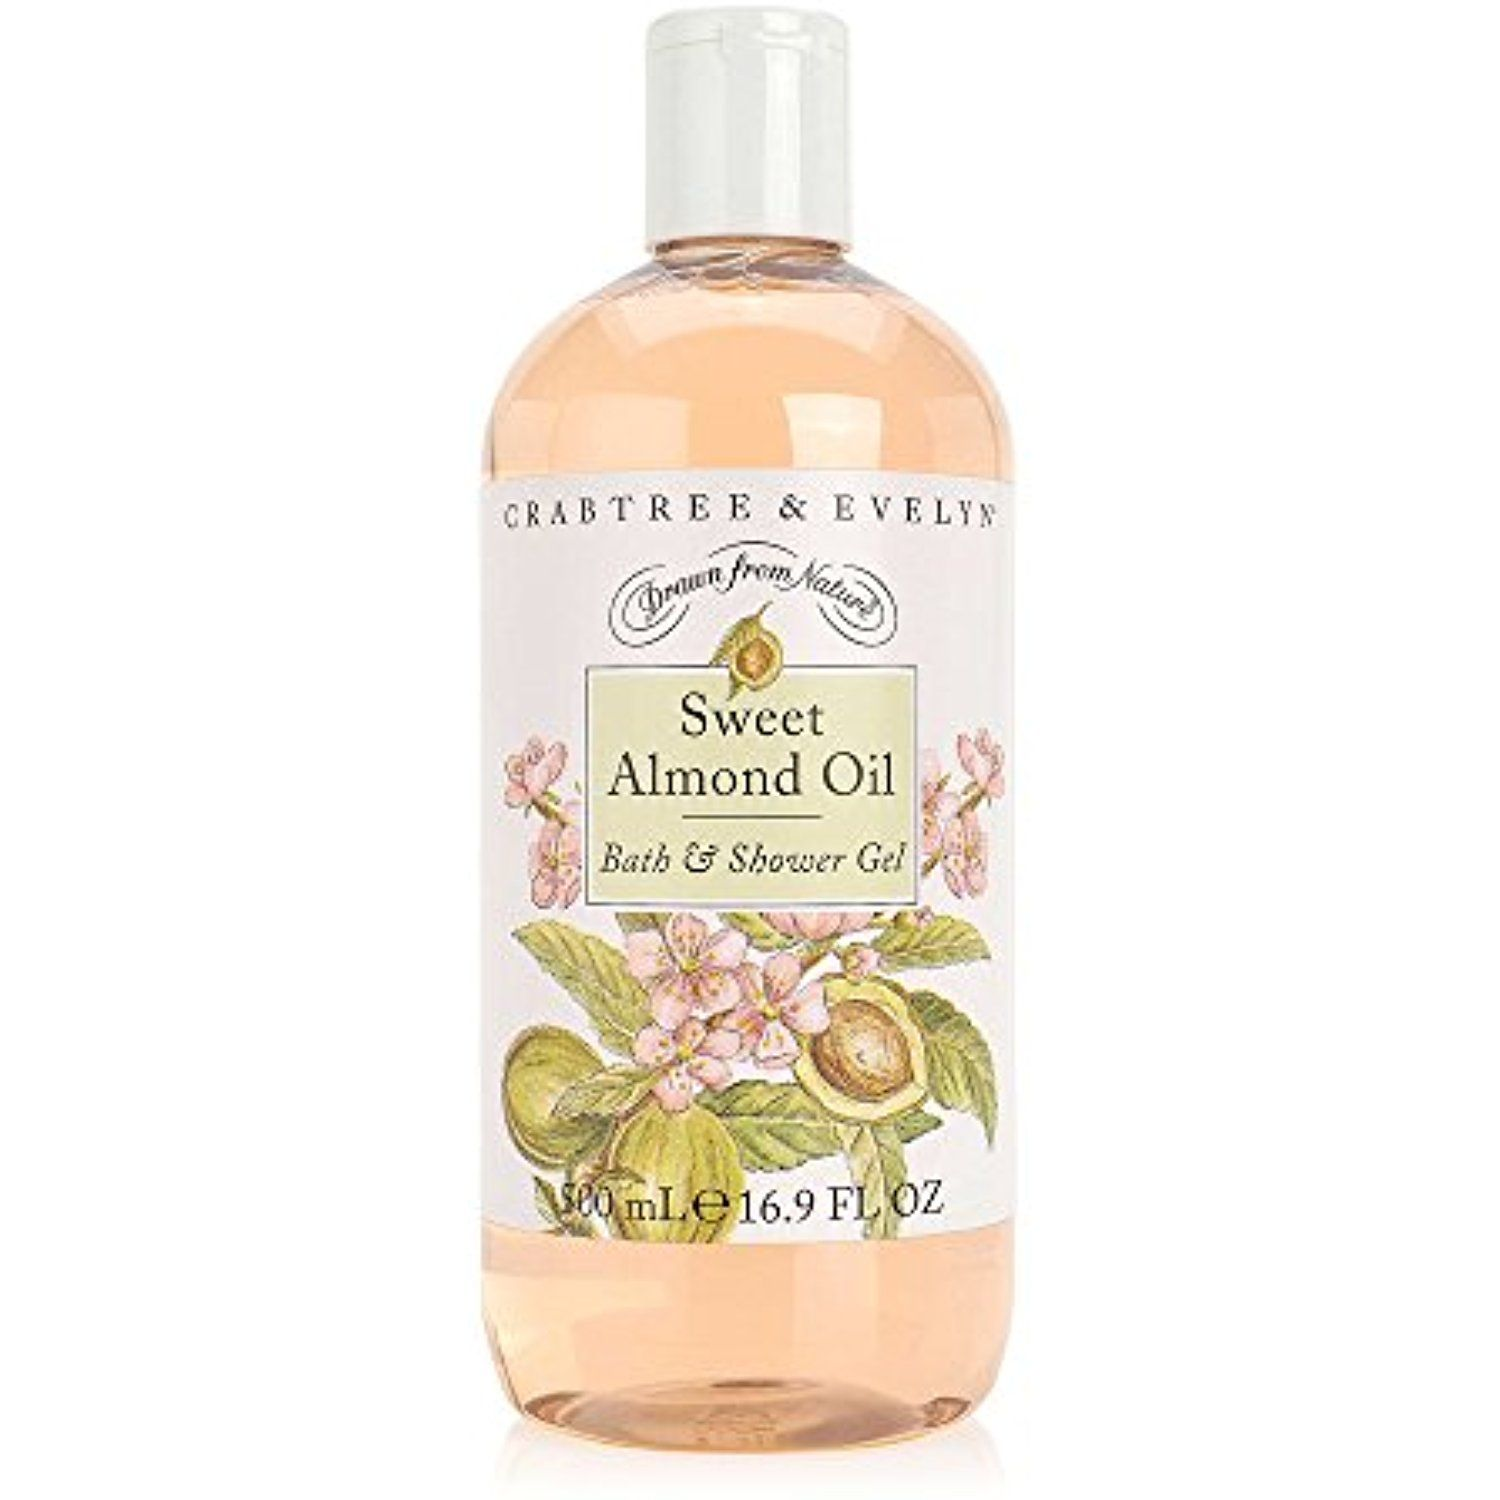 Crabtree Skincare Shower Gel Bath Body Lotion Crabtree